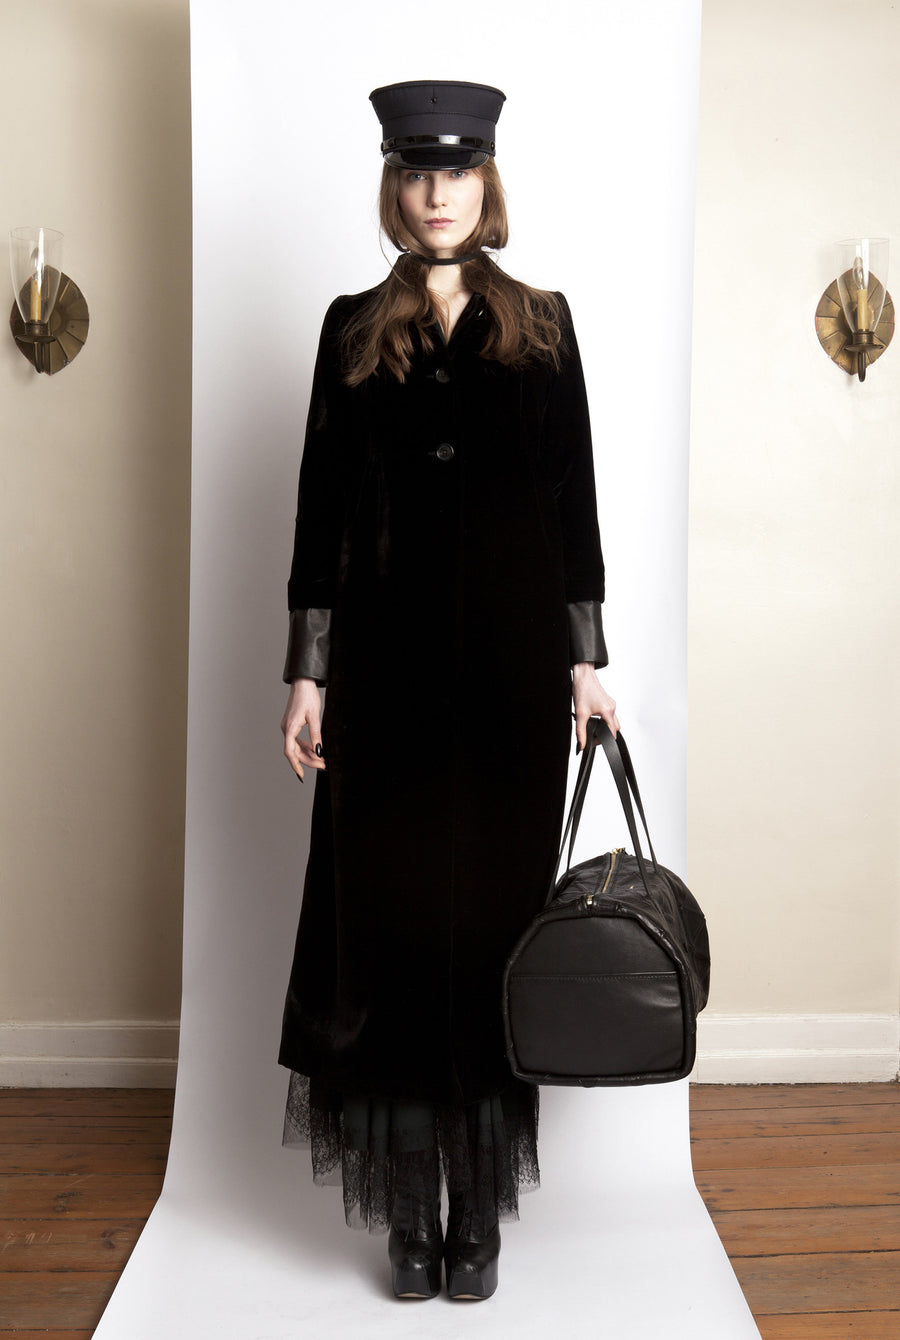 Basia IMG Model Wendy Nichol Clothing Fashion Designer Ready to Wear Fashion Show AW13 Witch Lessons Black Silk Velvet Victorian Coat with Leather Trim Custom Fabric Color Handmade in NYC New York City Custom Tailoring Fitting Size Color Fabric Made to Measure goth gothic edwardian Triangle patchwork travel bag victorian slip dress lace trim